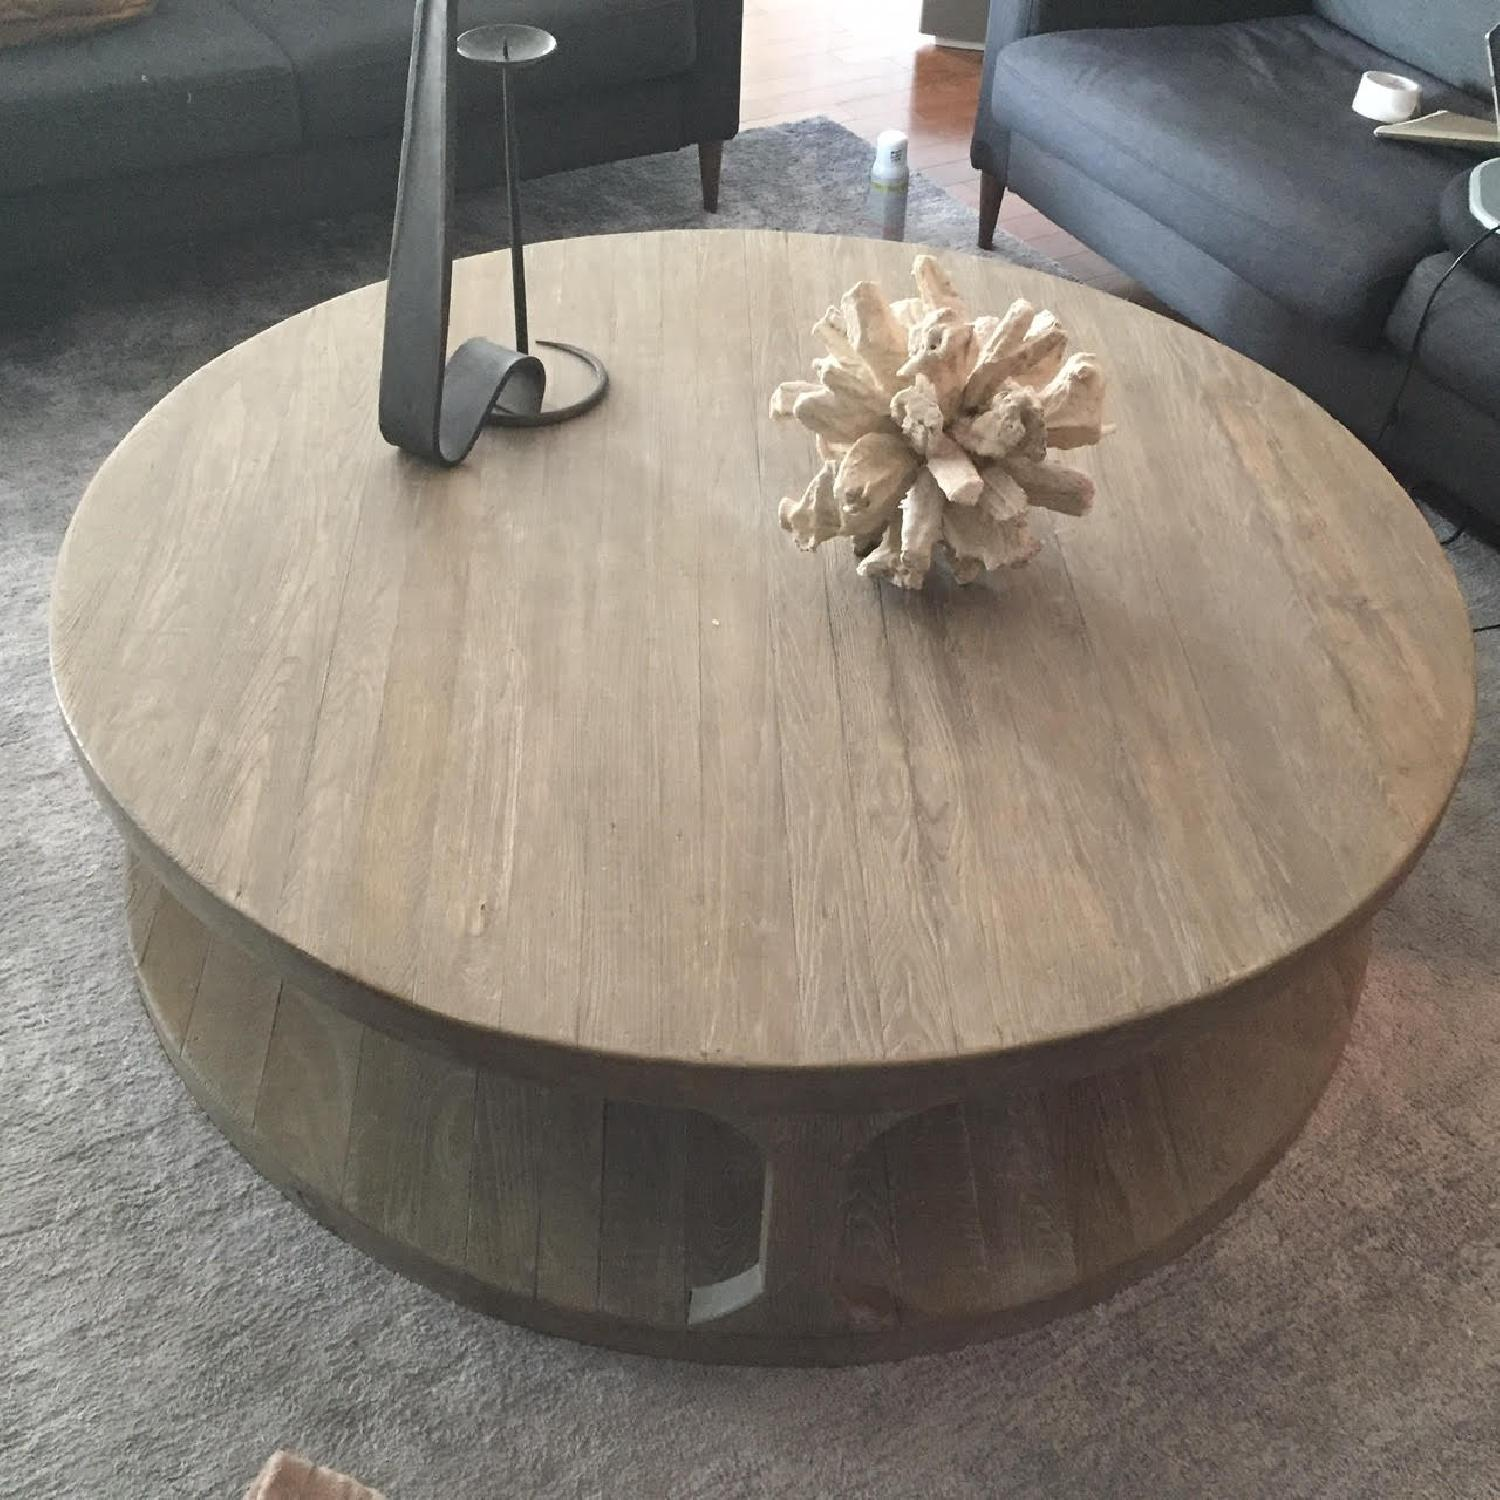 Restoration Hardware Martens Coffee Table - image-1